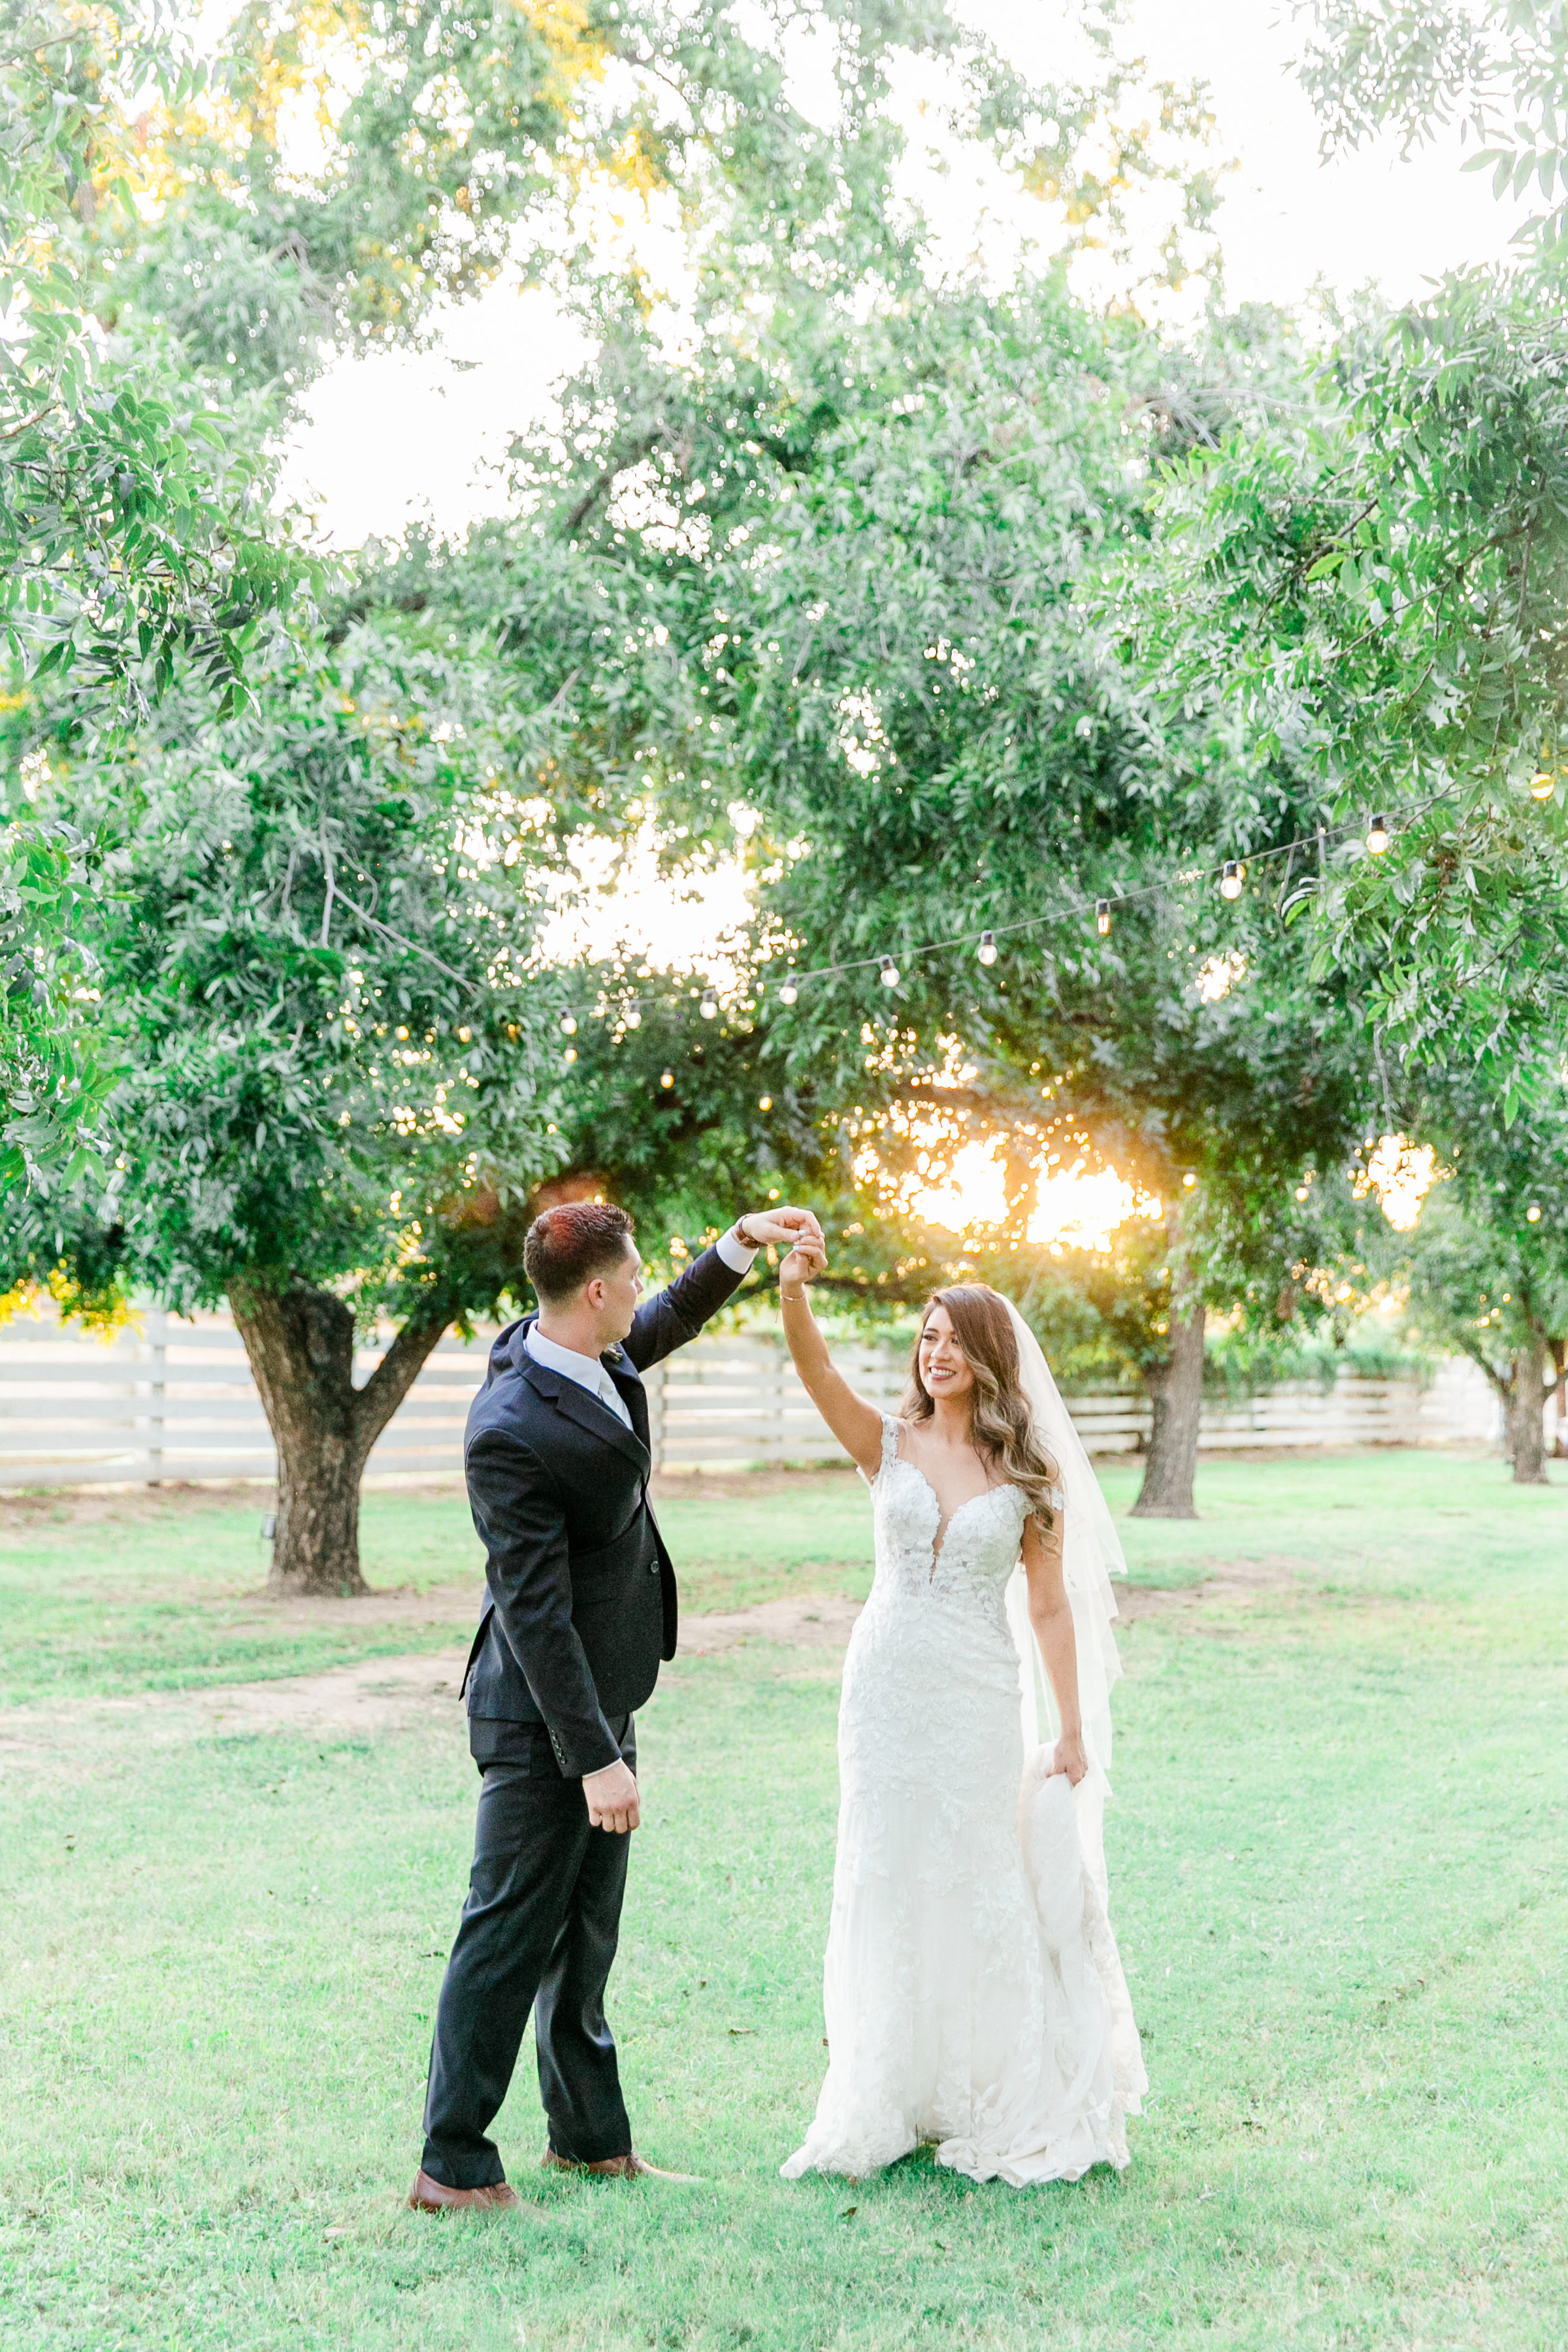 Karlie Colleen Photography - Phoenix Arizona - Farm At South Mountain Venue - Vanessa & Robert-618